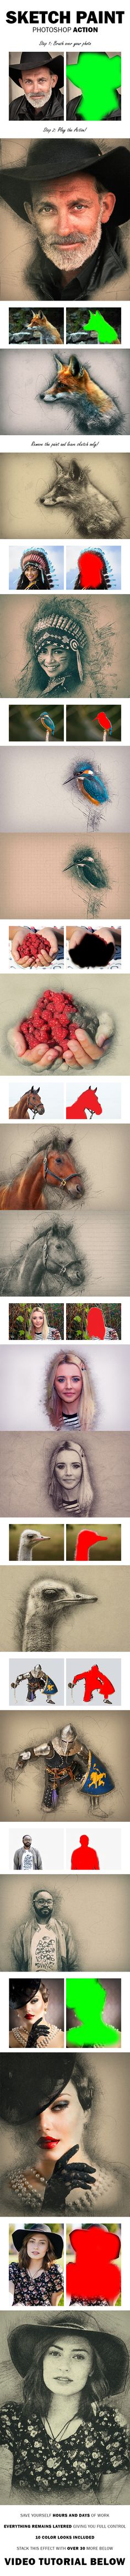 Sketch Paint Photoshop Action - Photo Effects Actions